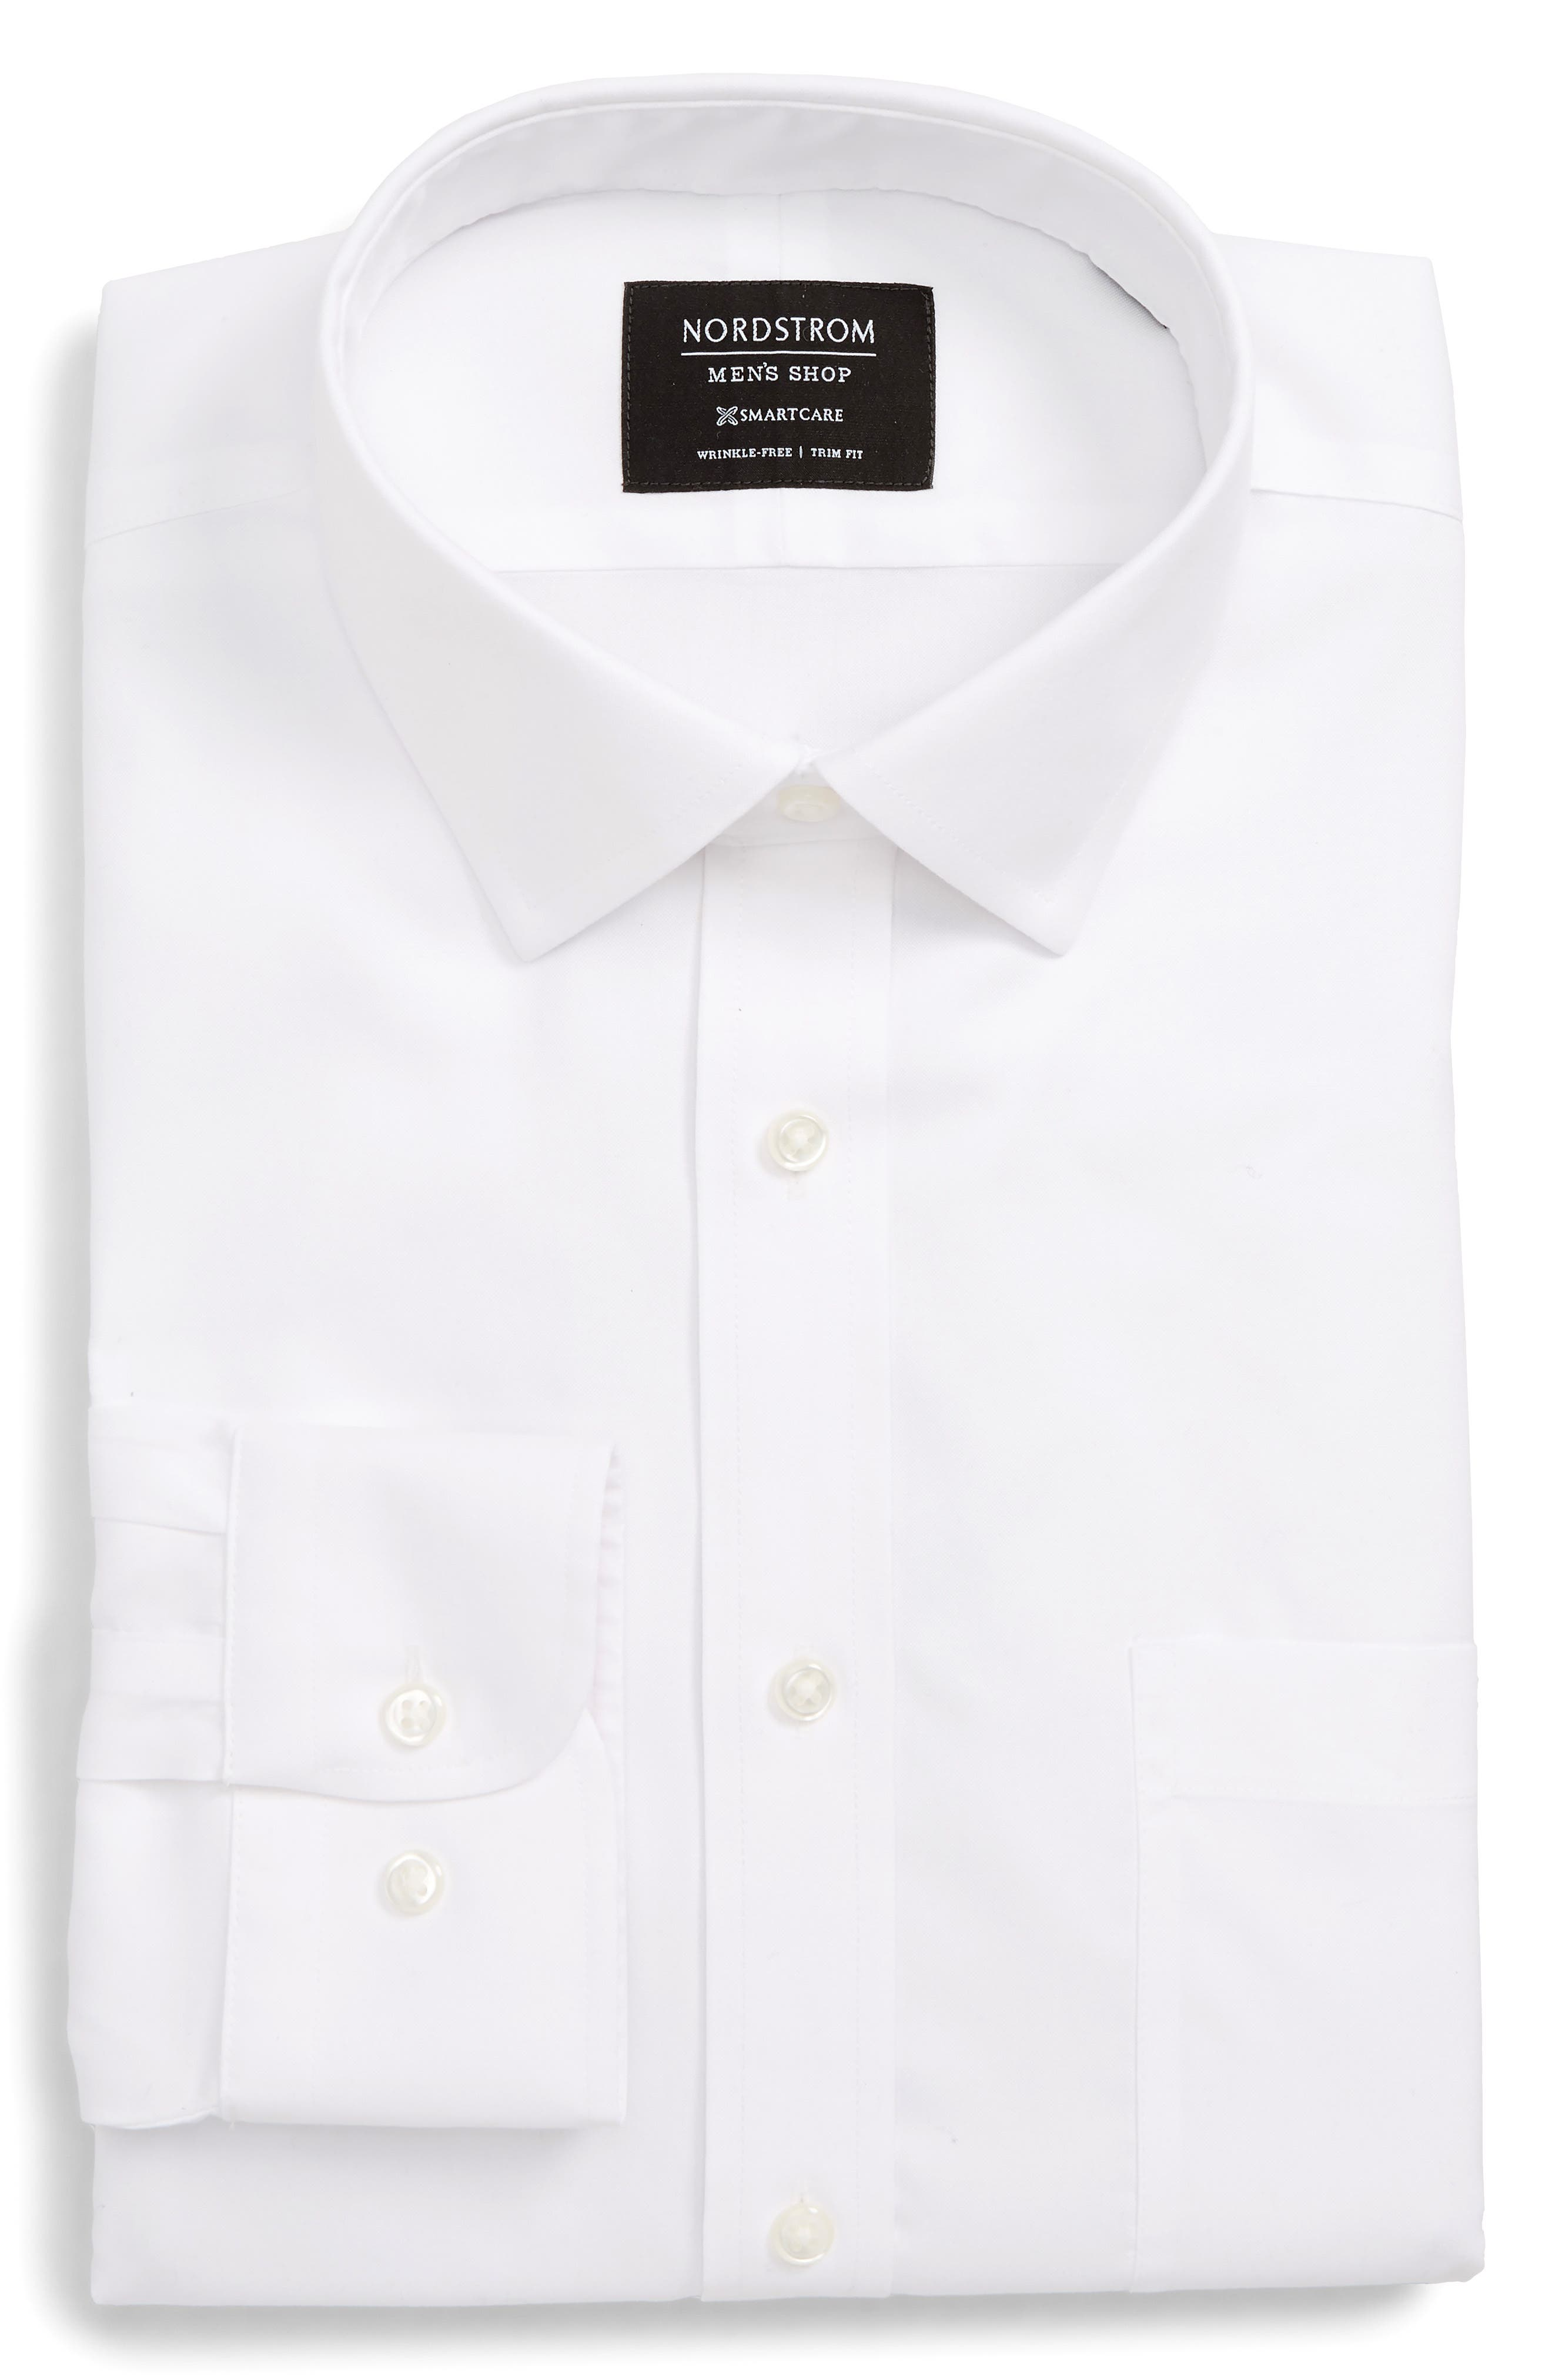 Nordstrom Shop Smartcare(TM) Trim Fit Solid Dress Shirt, 5 32/33 - White